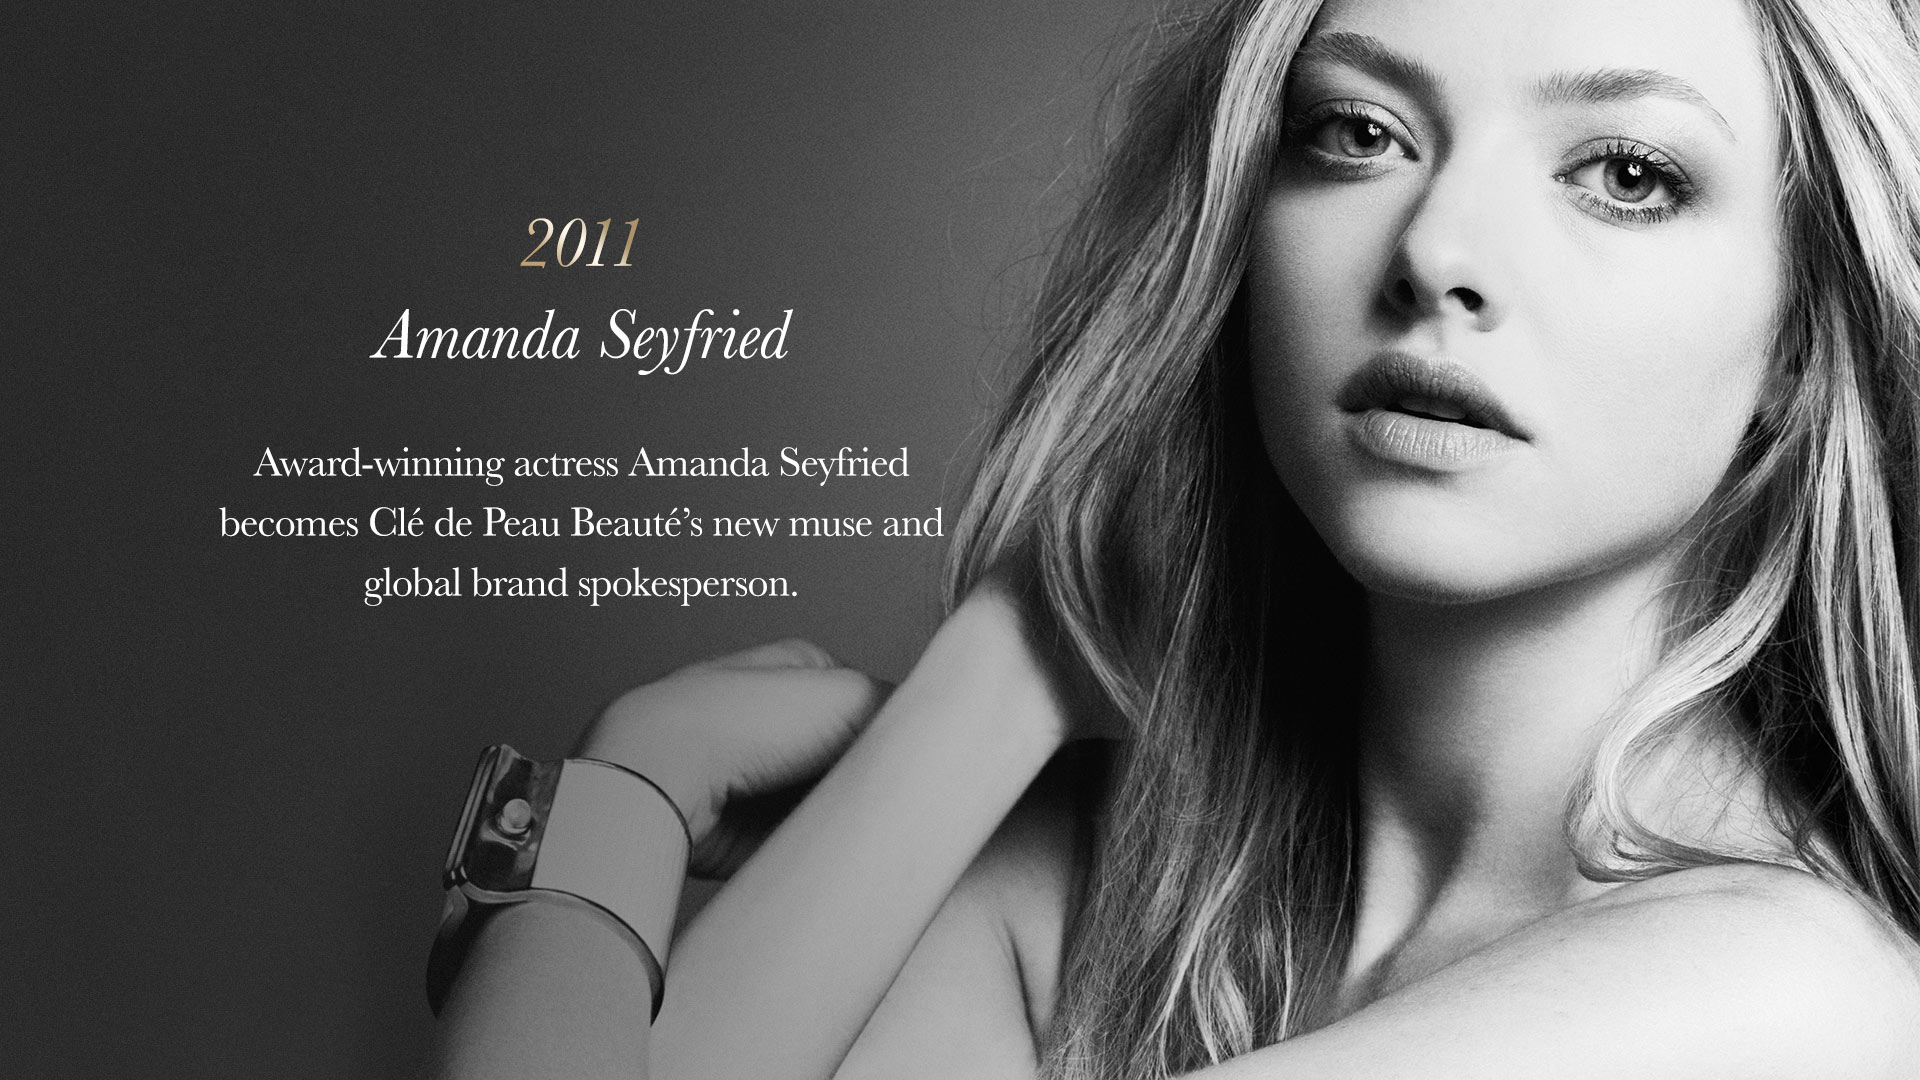 Award-winning actress Amanda Seyfried becomes Clé de Peau Beauté's new muse and global brand spokesperson.